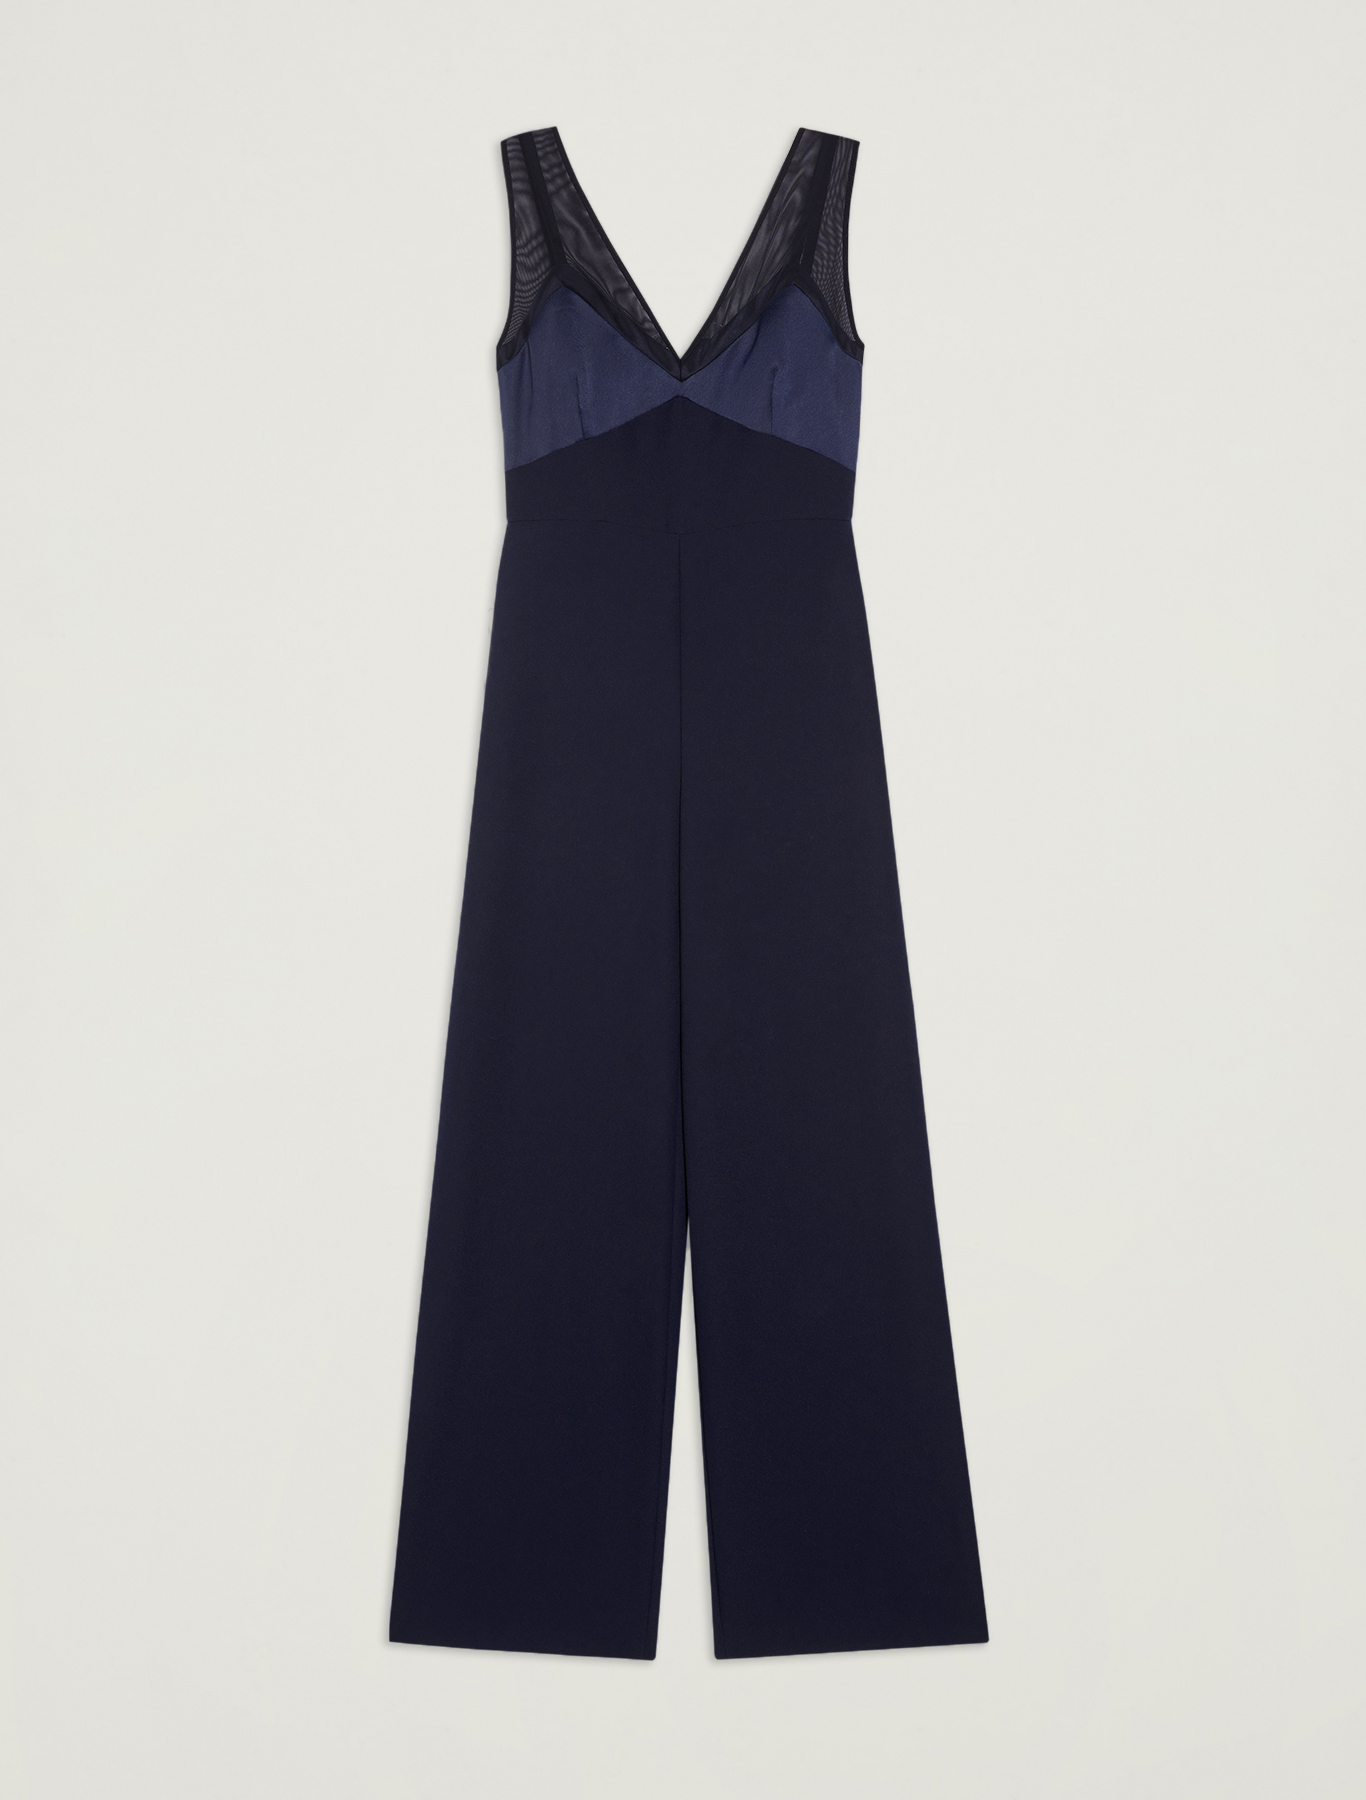 Jumpsuit with satin and tulle details - navy blue - pennyblack